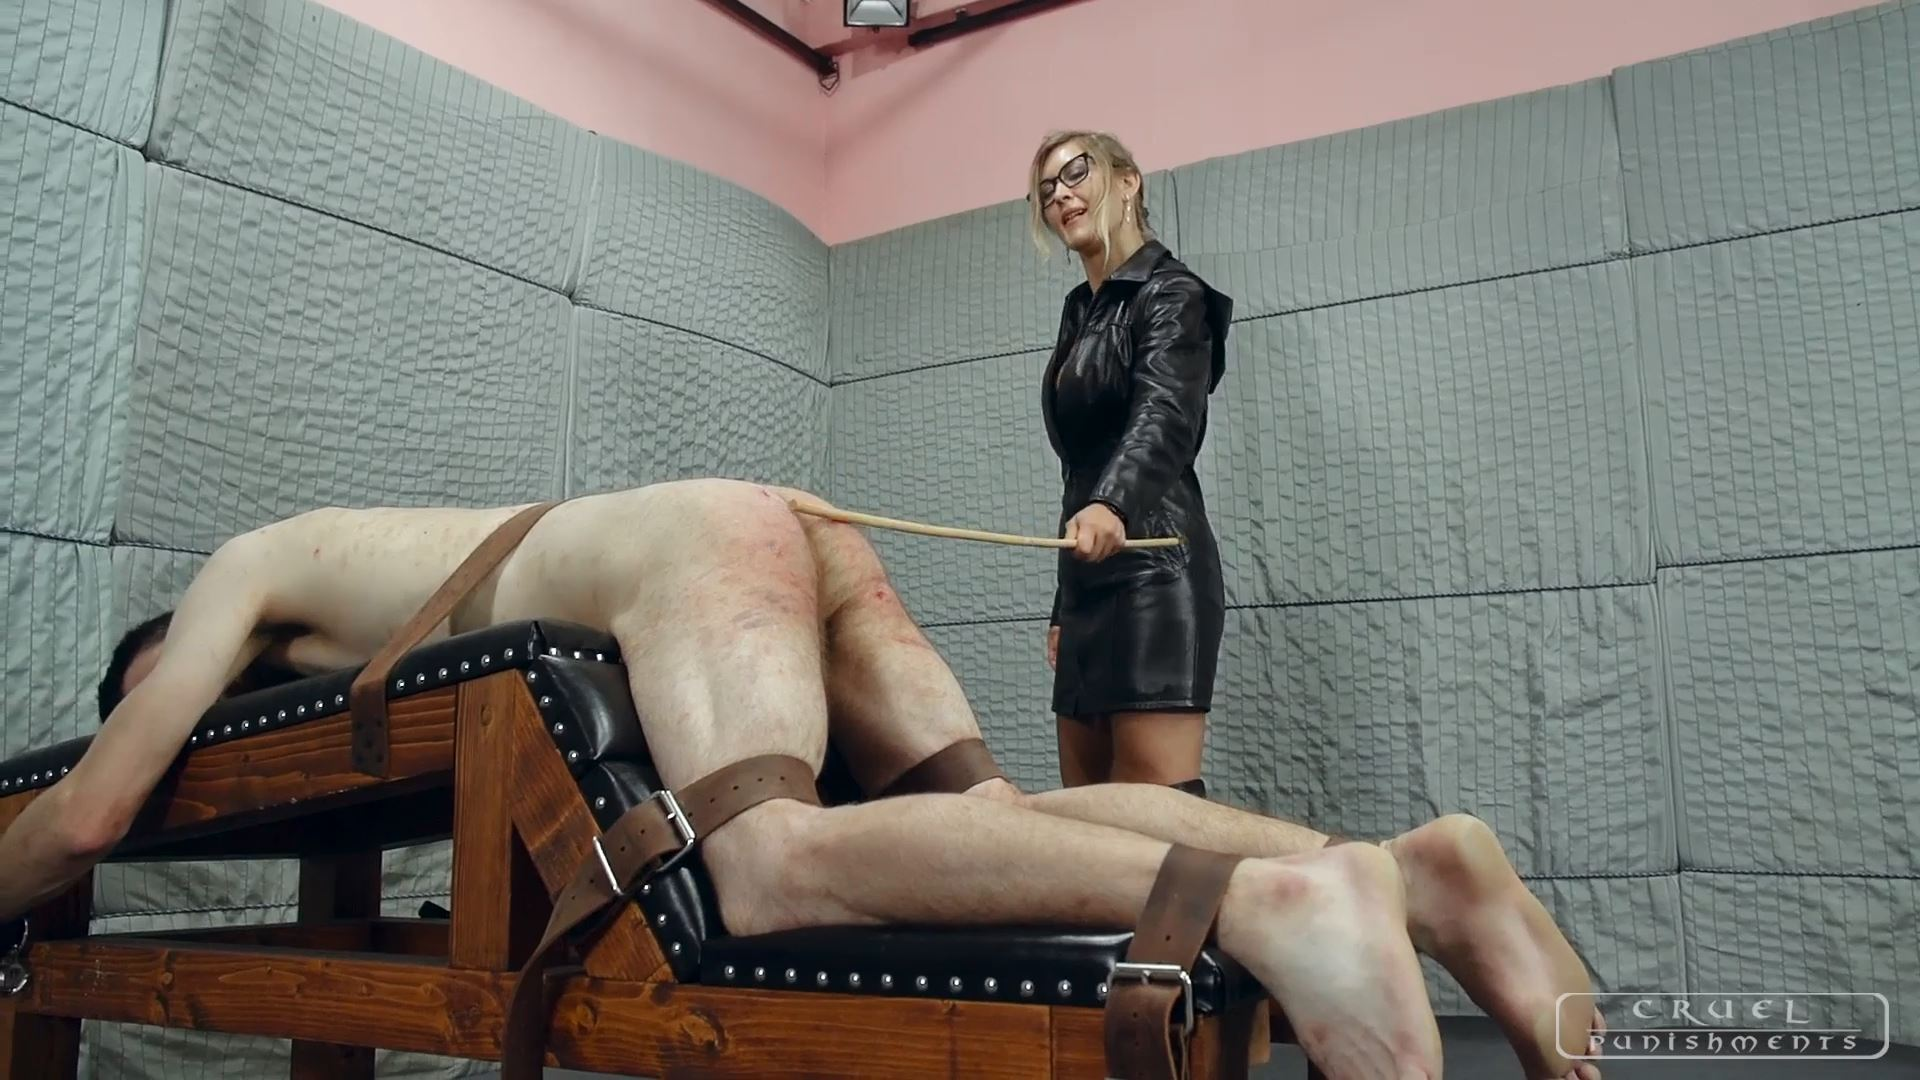 Mistress Bloodymary In Scene: Cruel Mistress Bloodymary Part 3 - CRUEL PUNISHMENTS - SEVERE FEMDOM - FULL HD/1080p/MP4